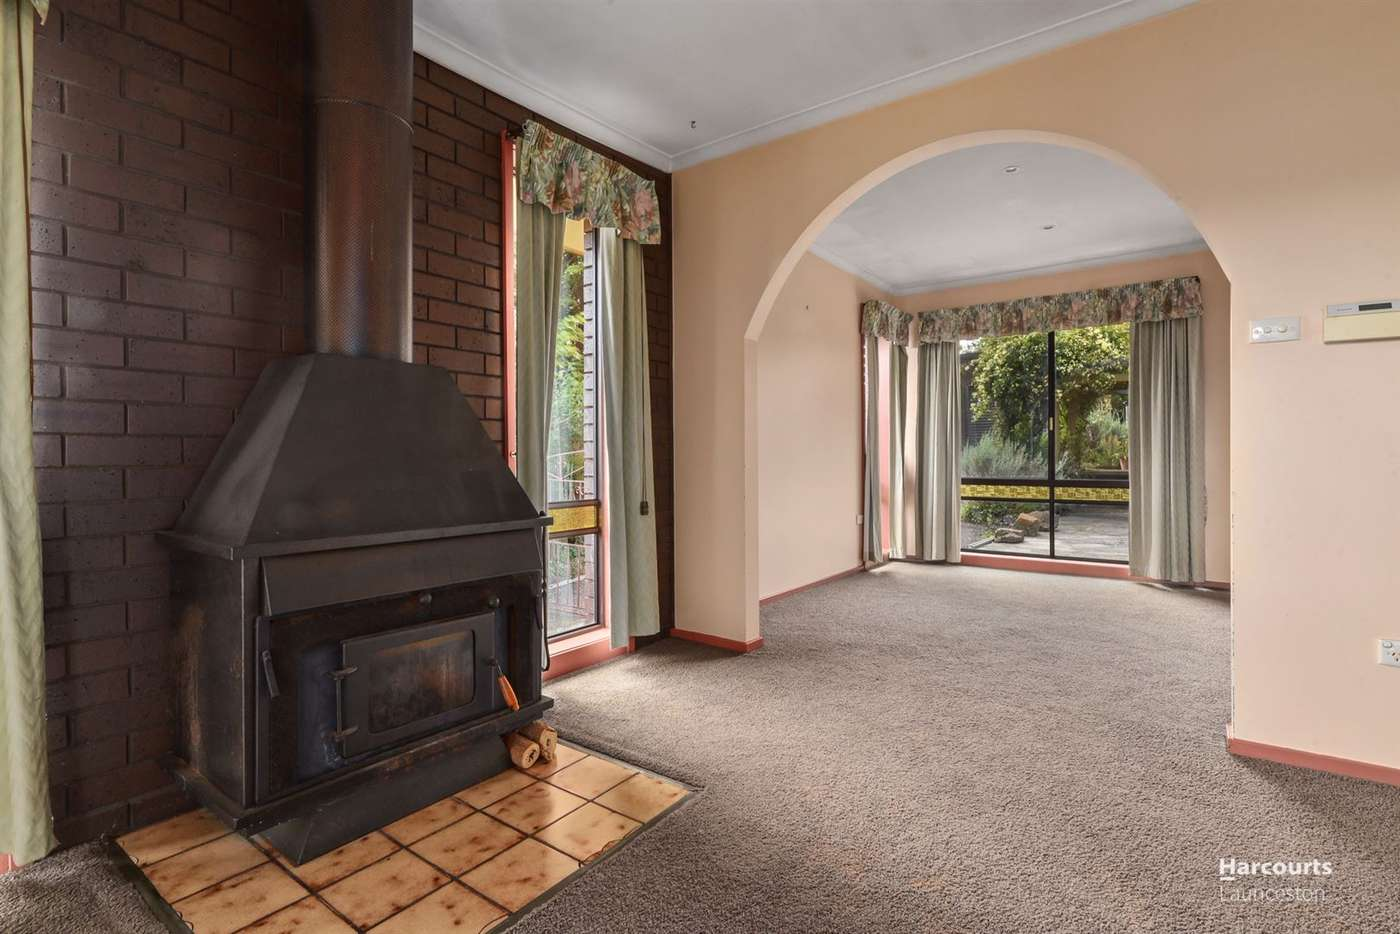 Fifth view of Homely house listing, 11 Hall Court, Summerhill TAS 7250